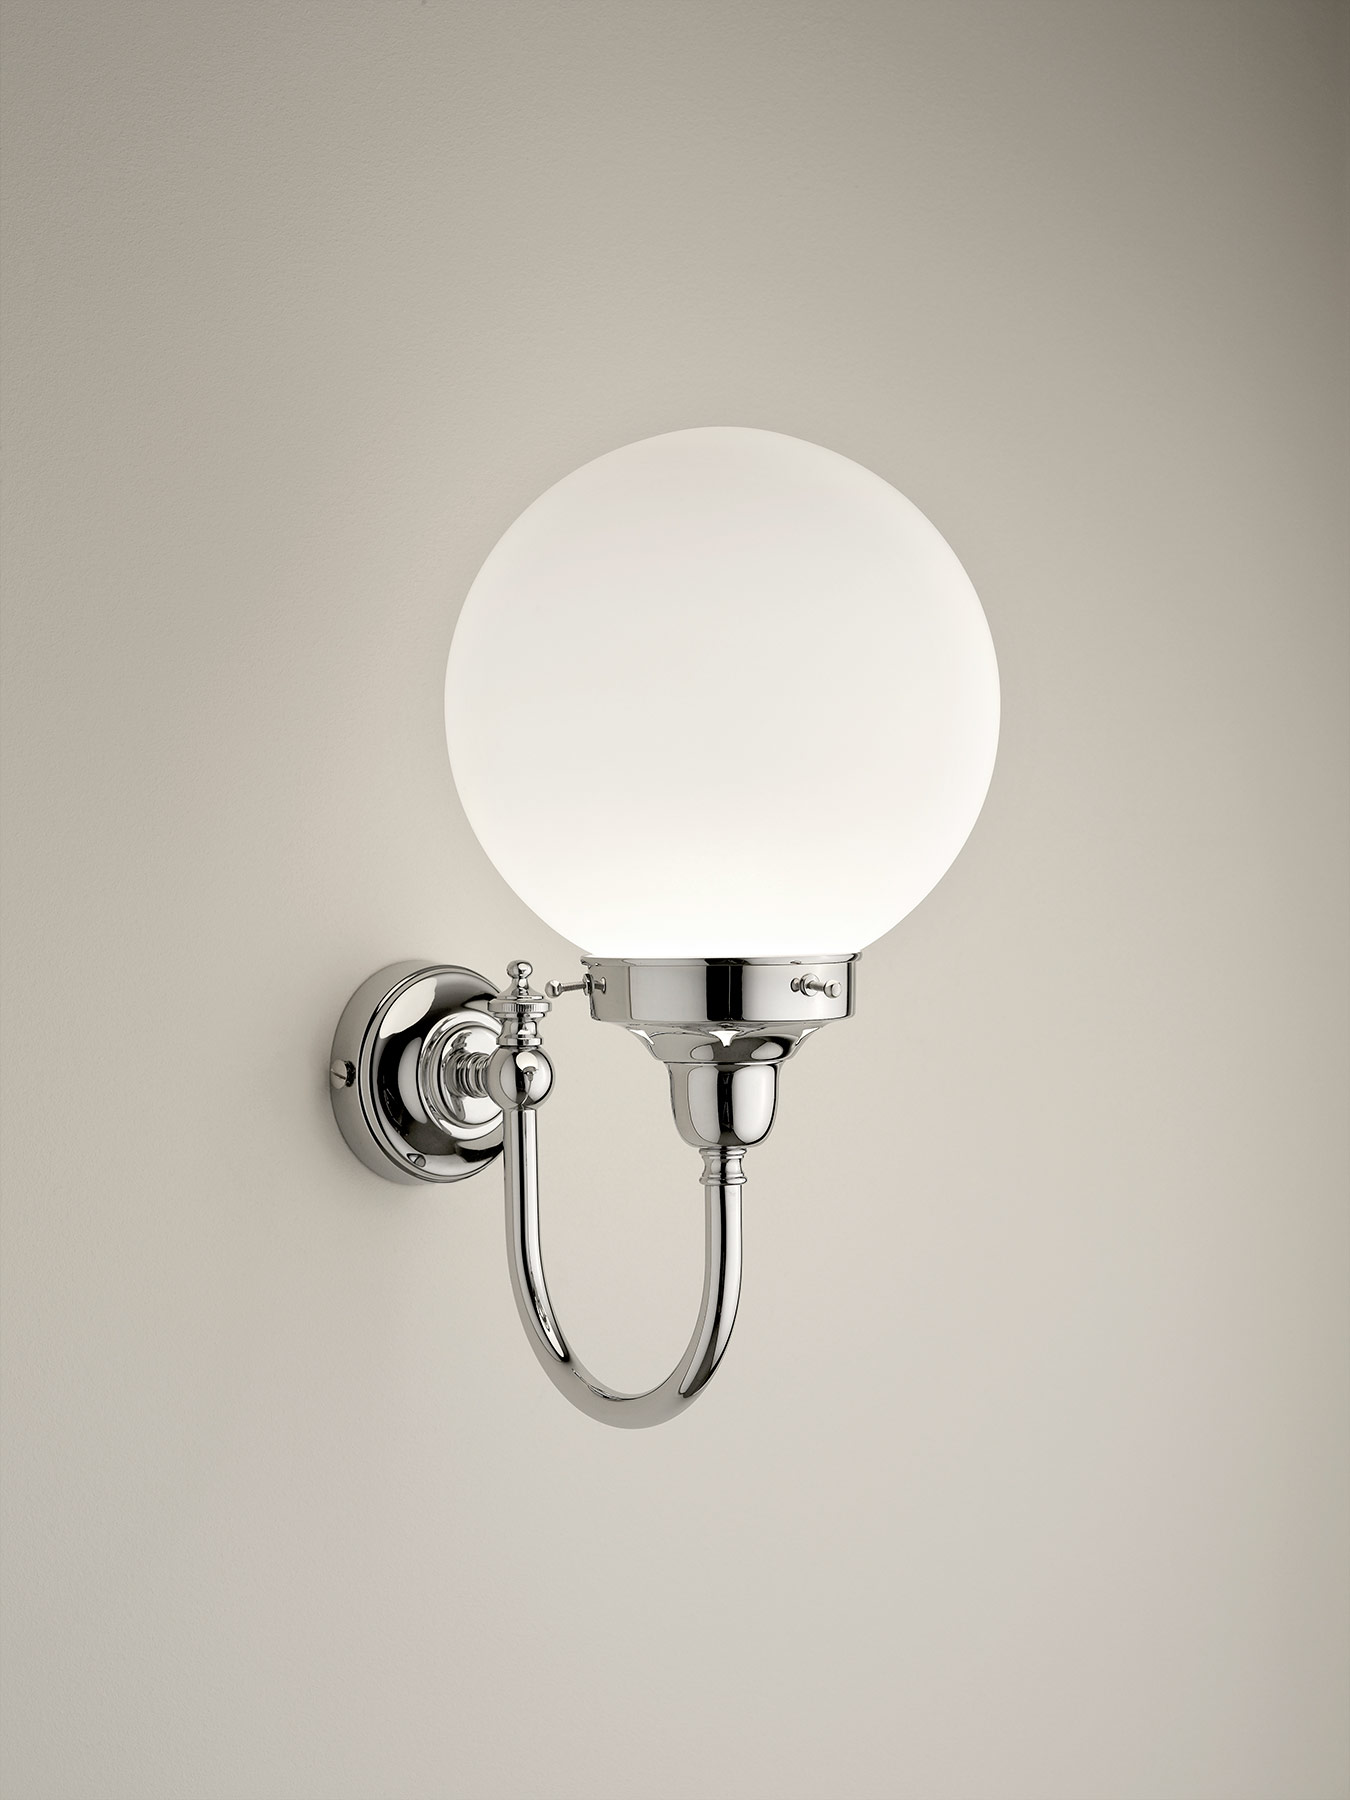 Traditional Sfera-Yeats Wall Mount Lamp